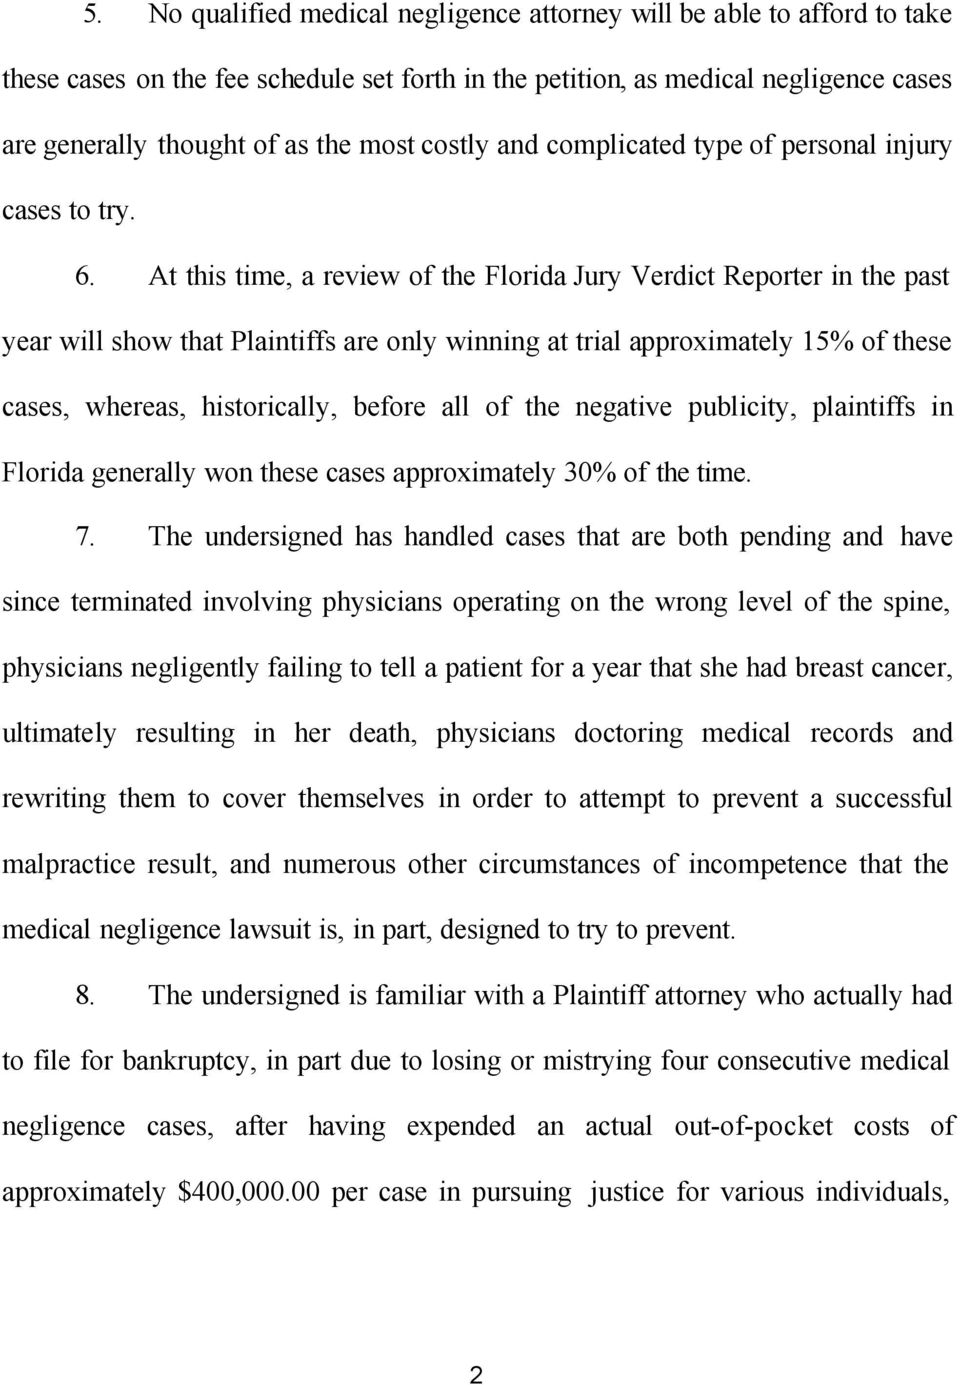 At this time, a review of the Florida Jury Verdict Reporter in the past year will show that Plaintiffs are only winning at trial approximately 15% of these cases, whereas, historically, before all of